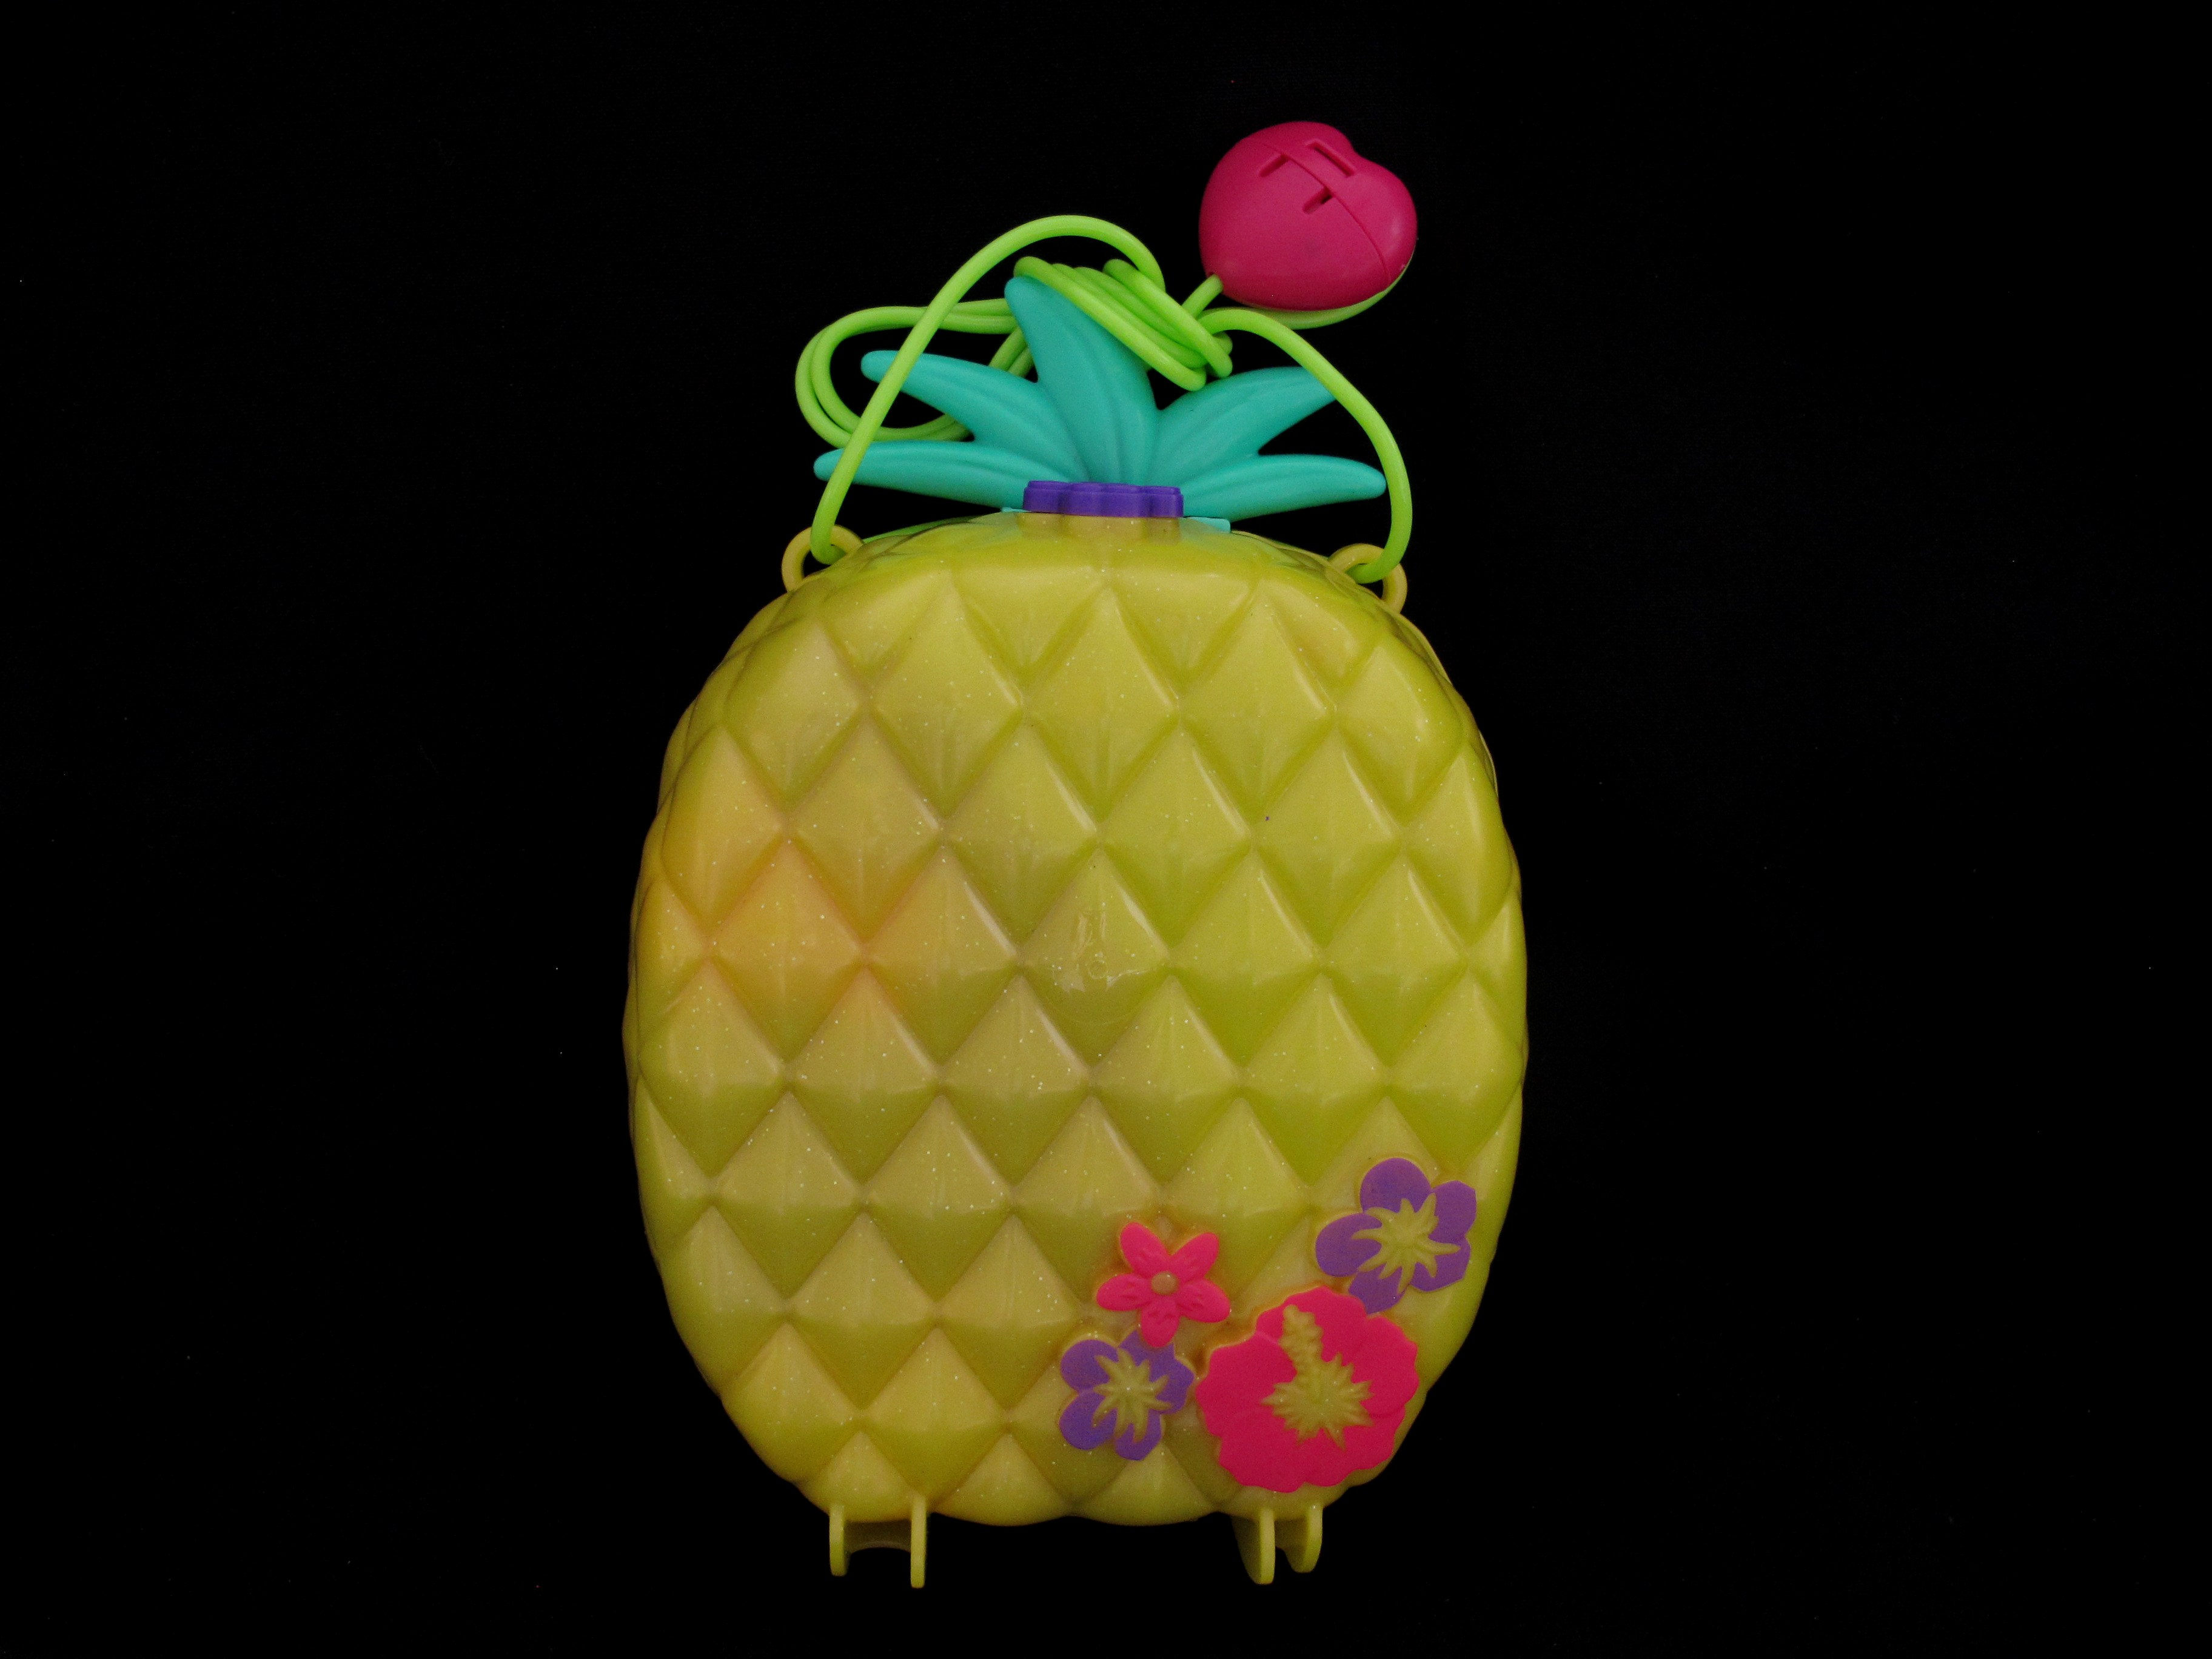 2019 Tropicool Pineapple Purse Polly Pocket (14).jpg